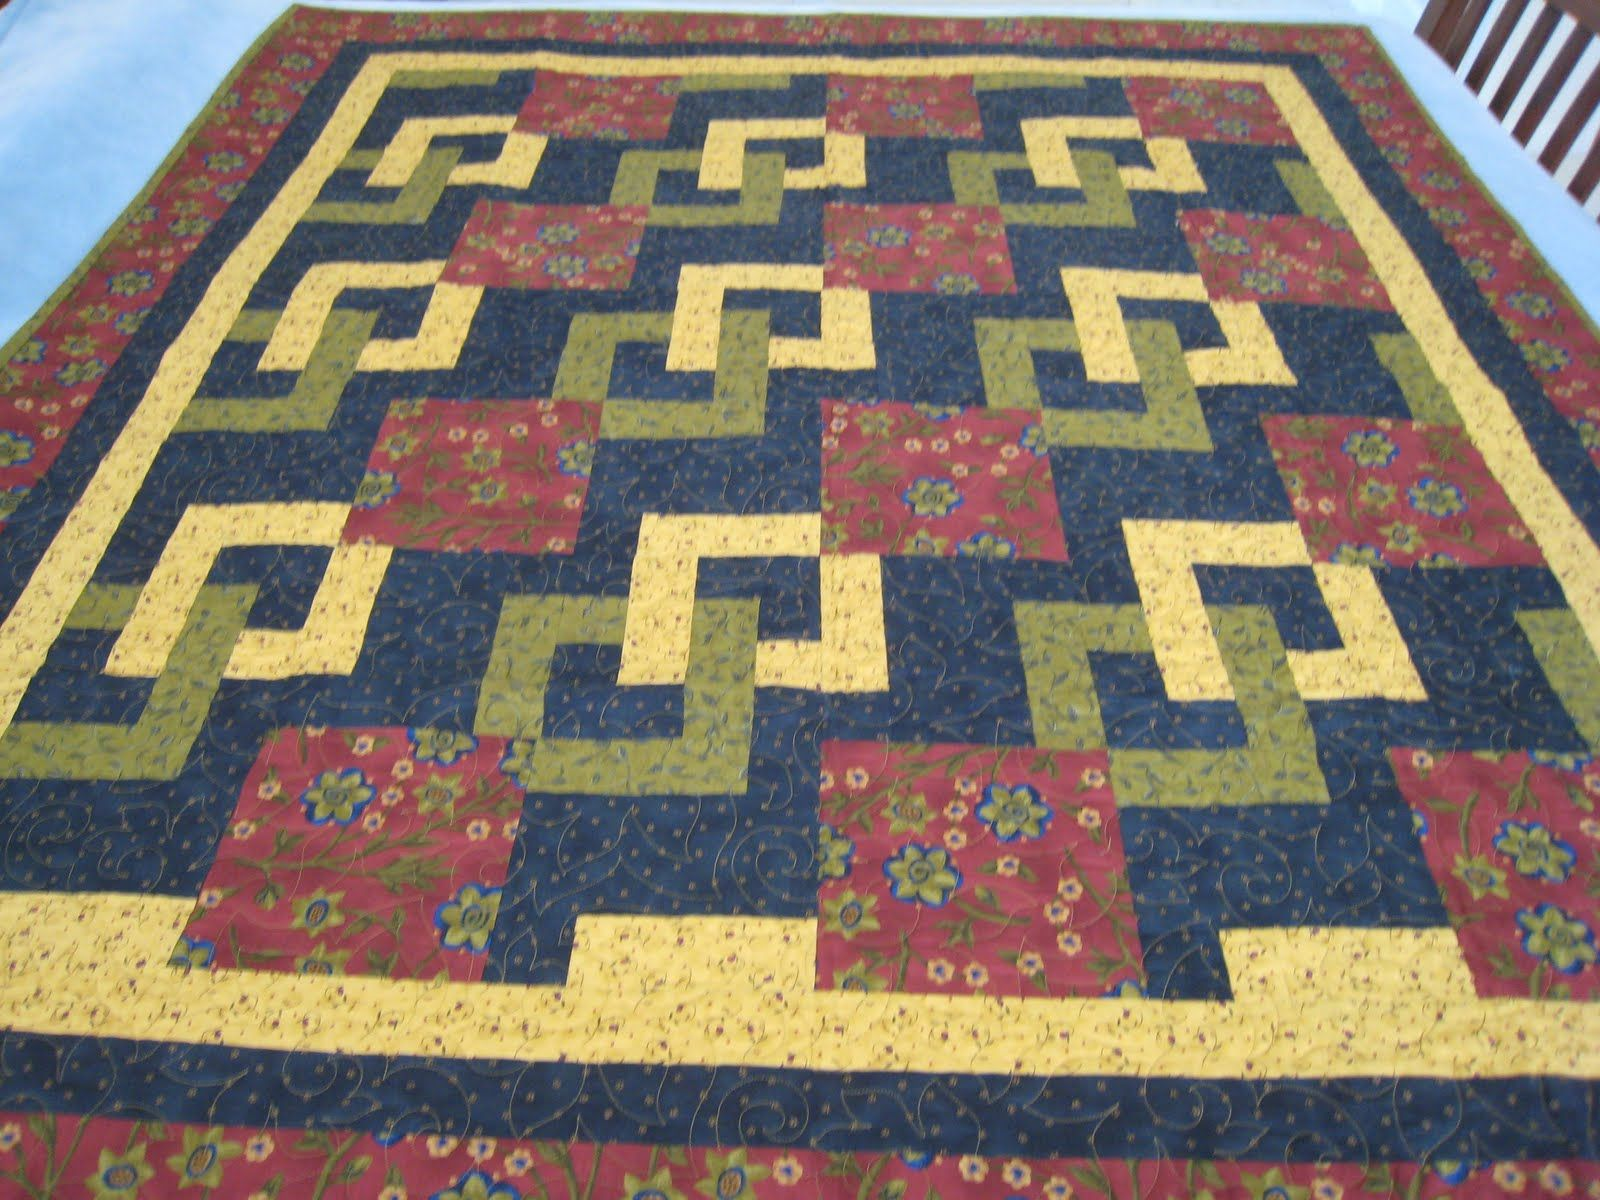 5 yard quilt patterns free | It is from a book called